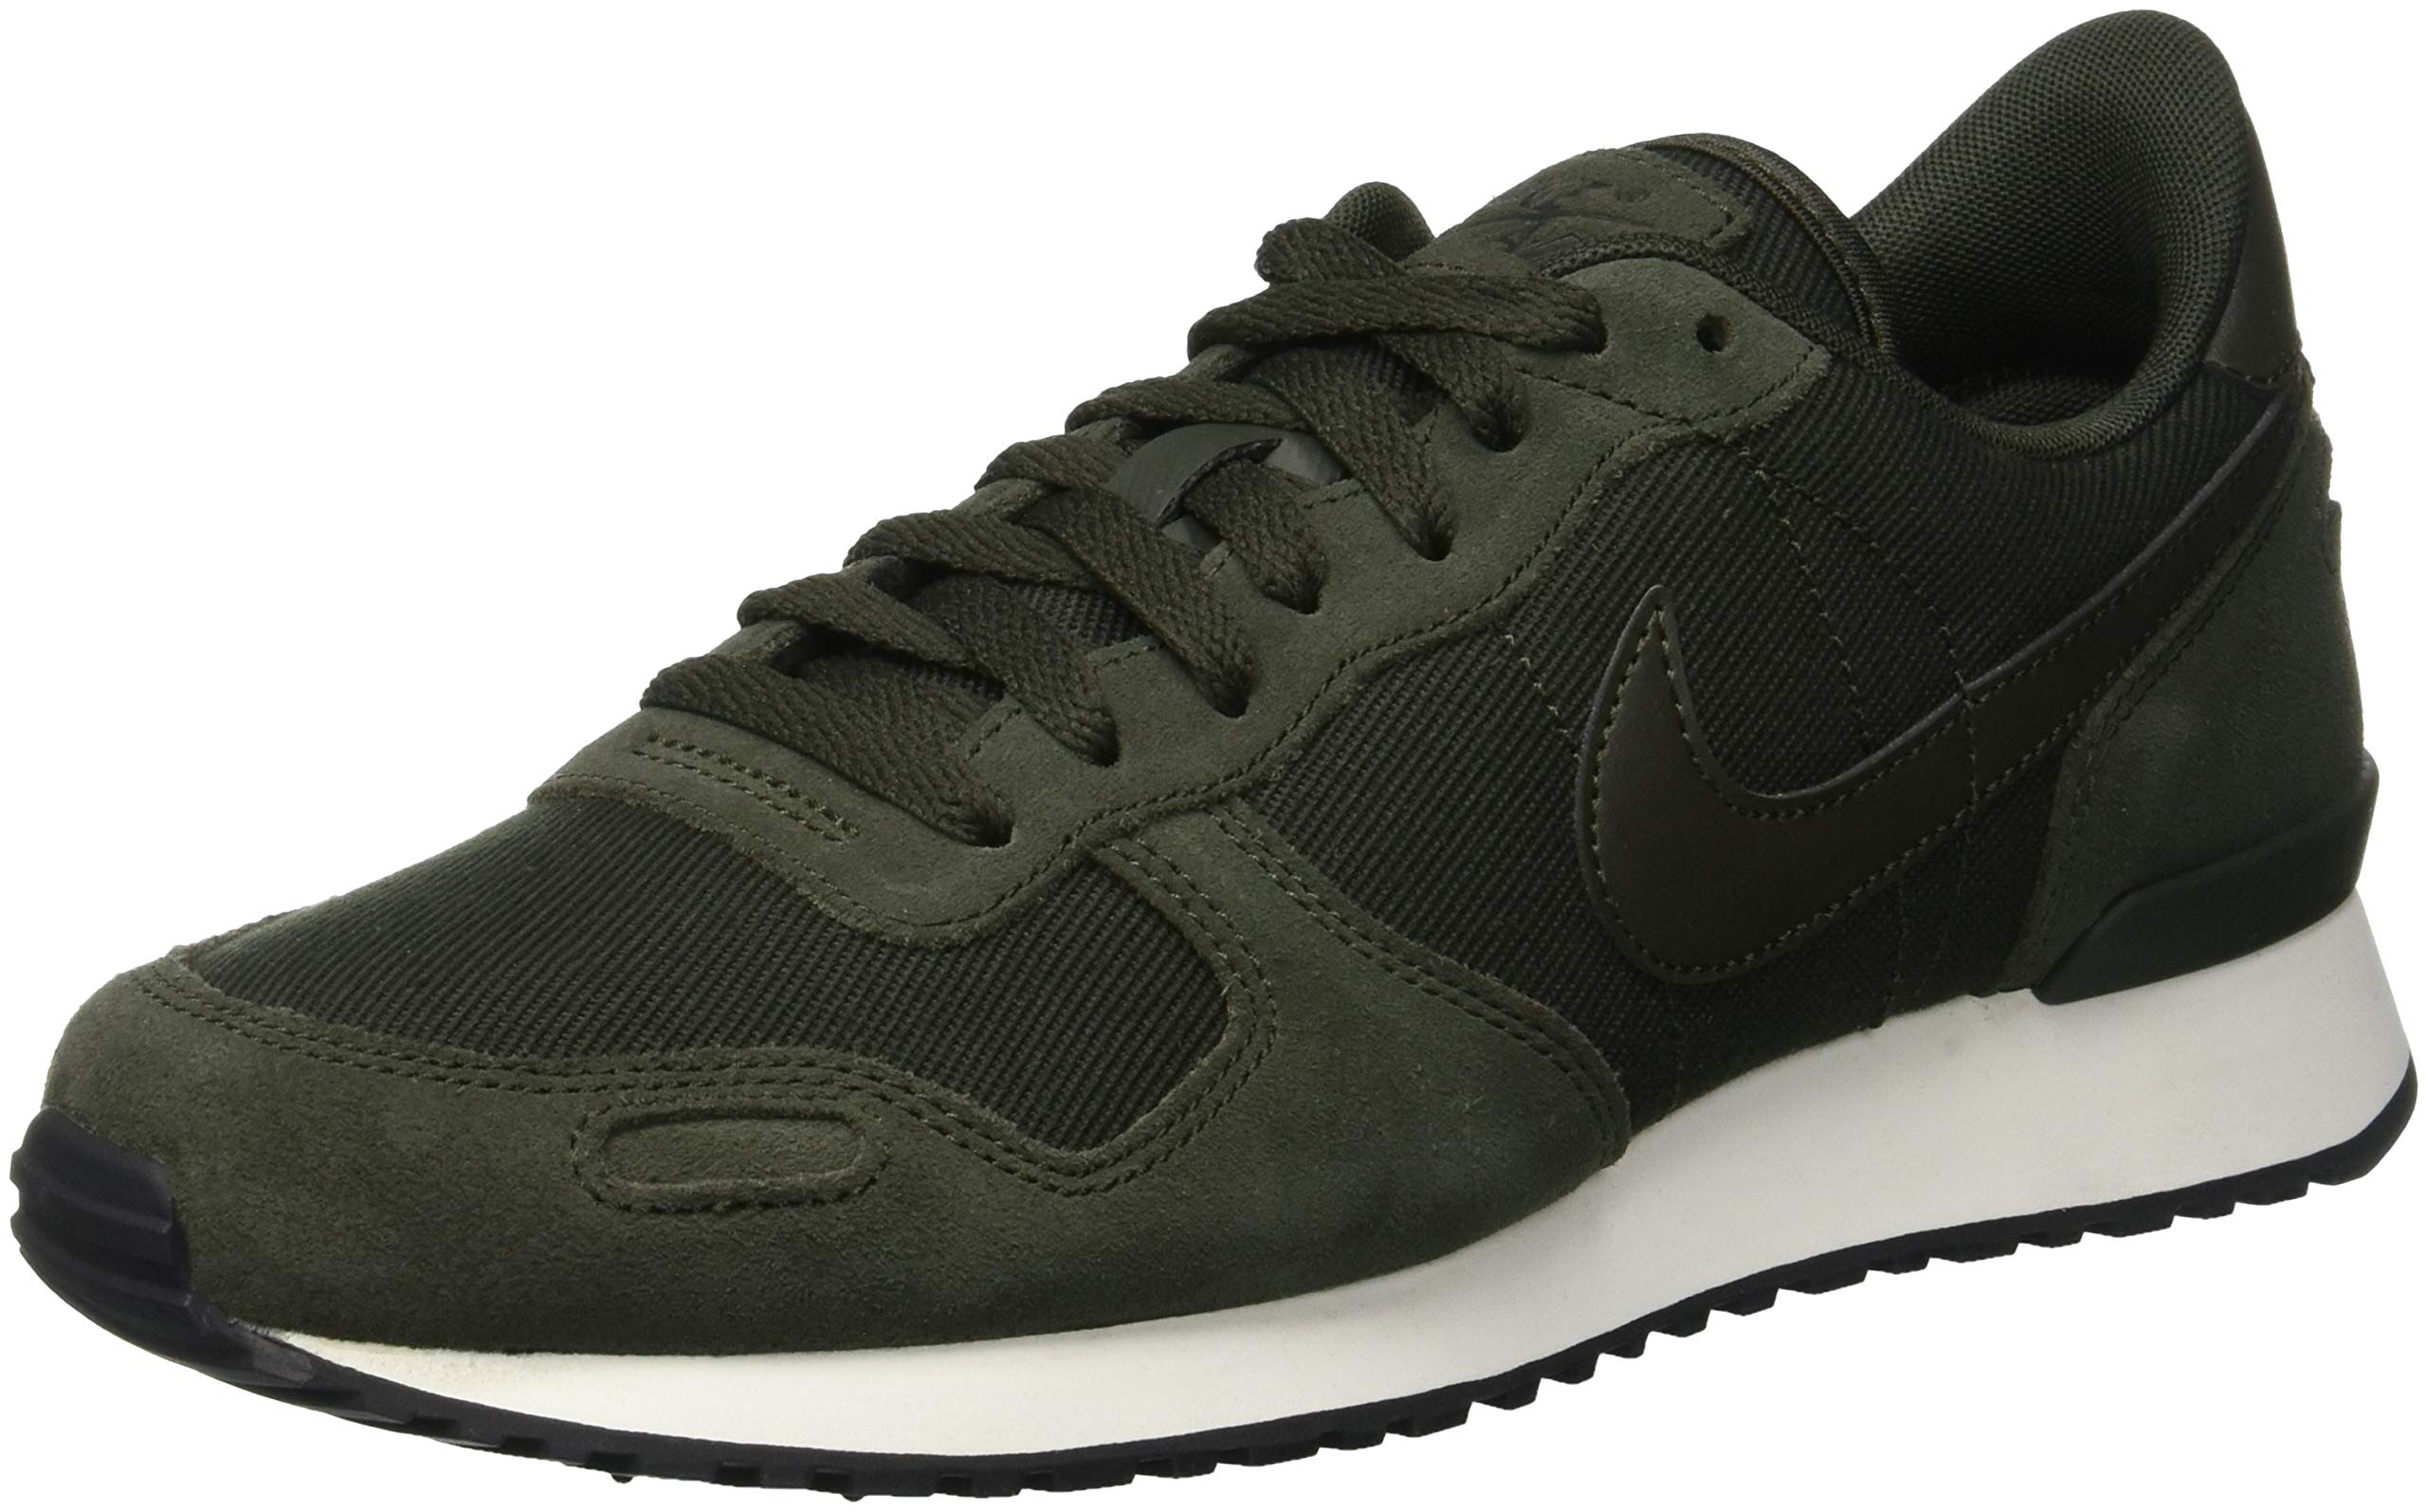 competitive price 89266 010b7 NIKE Herren Air Vrtx Ltr Laufschuhe | Amazon